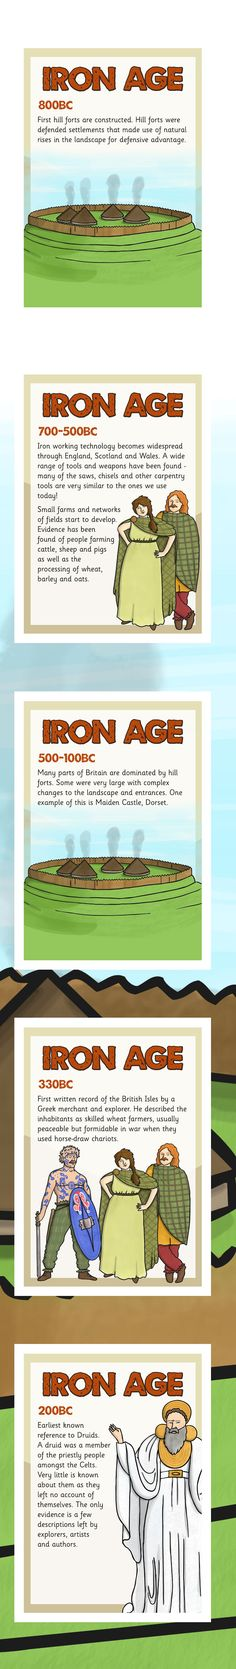 KS2 History Timelines- The Iron Age Timeline Posters